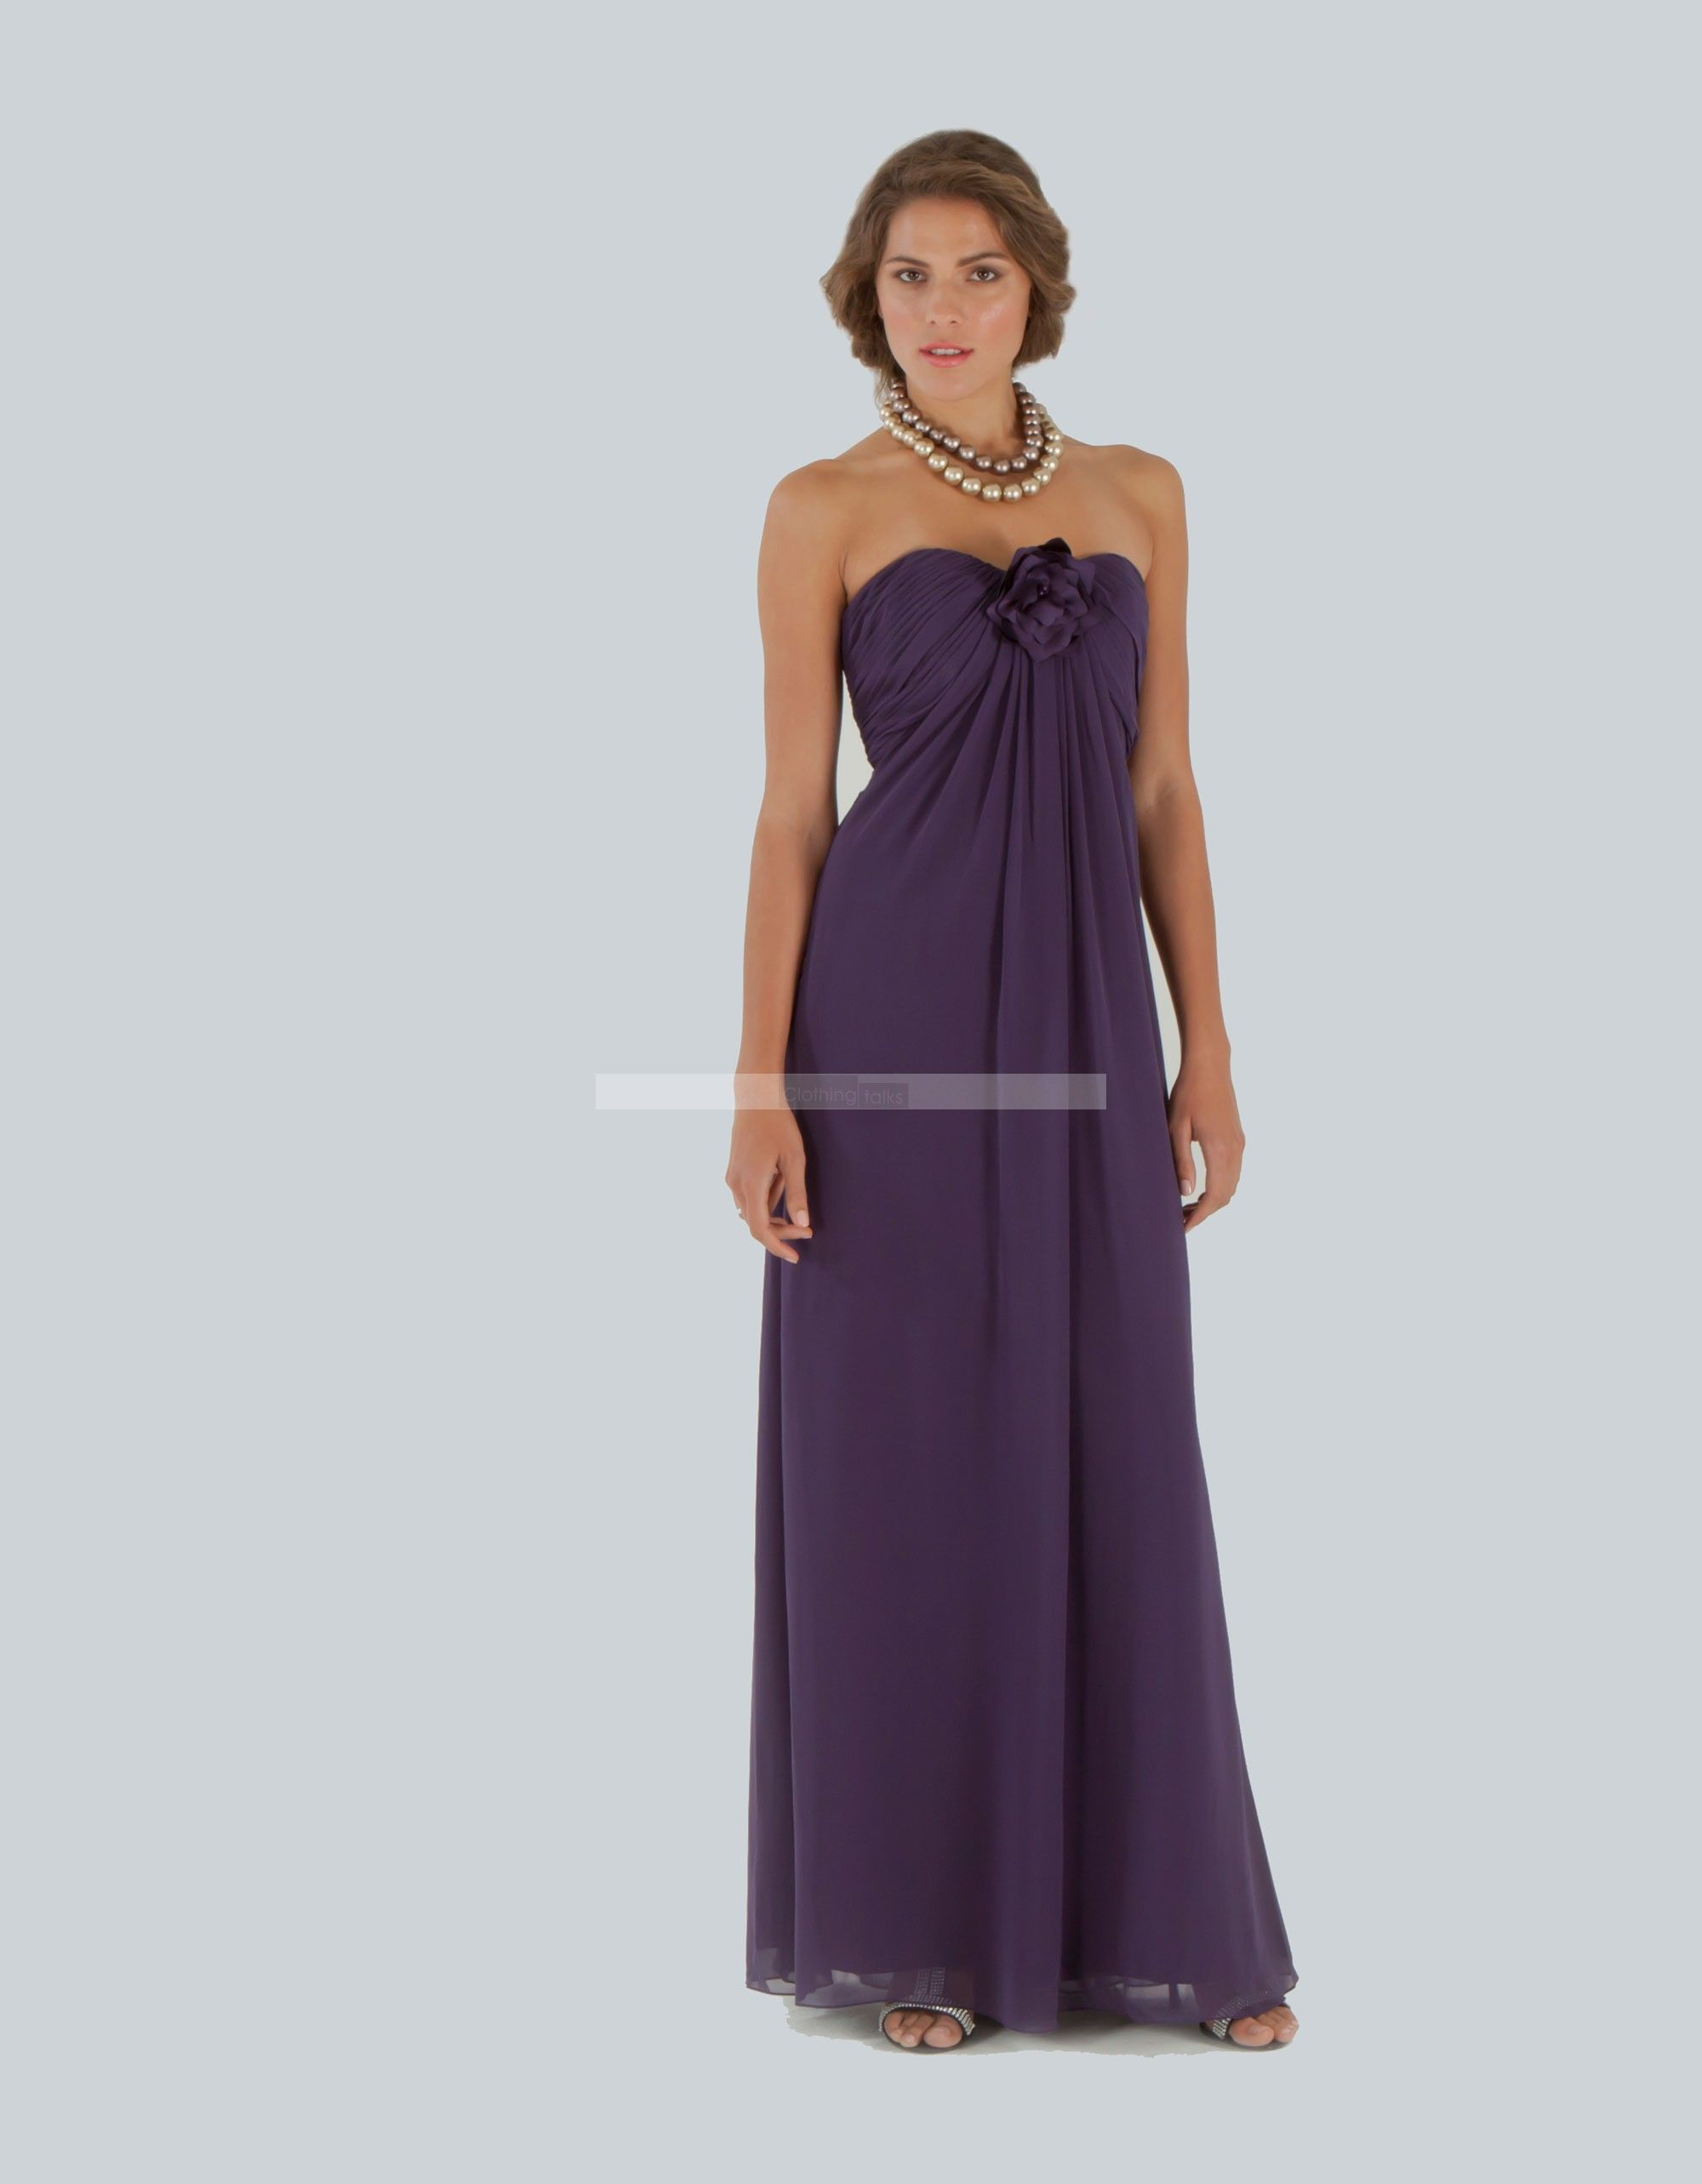 Amore Wedding Dresses - Page 151 of 473 - Bridesmaid Dresses Uk